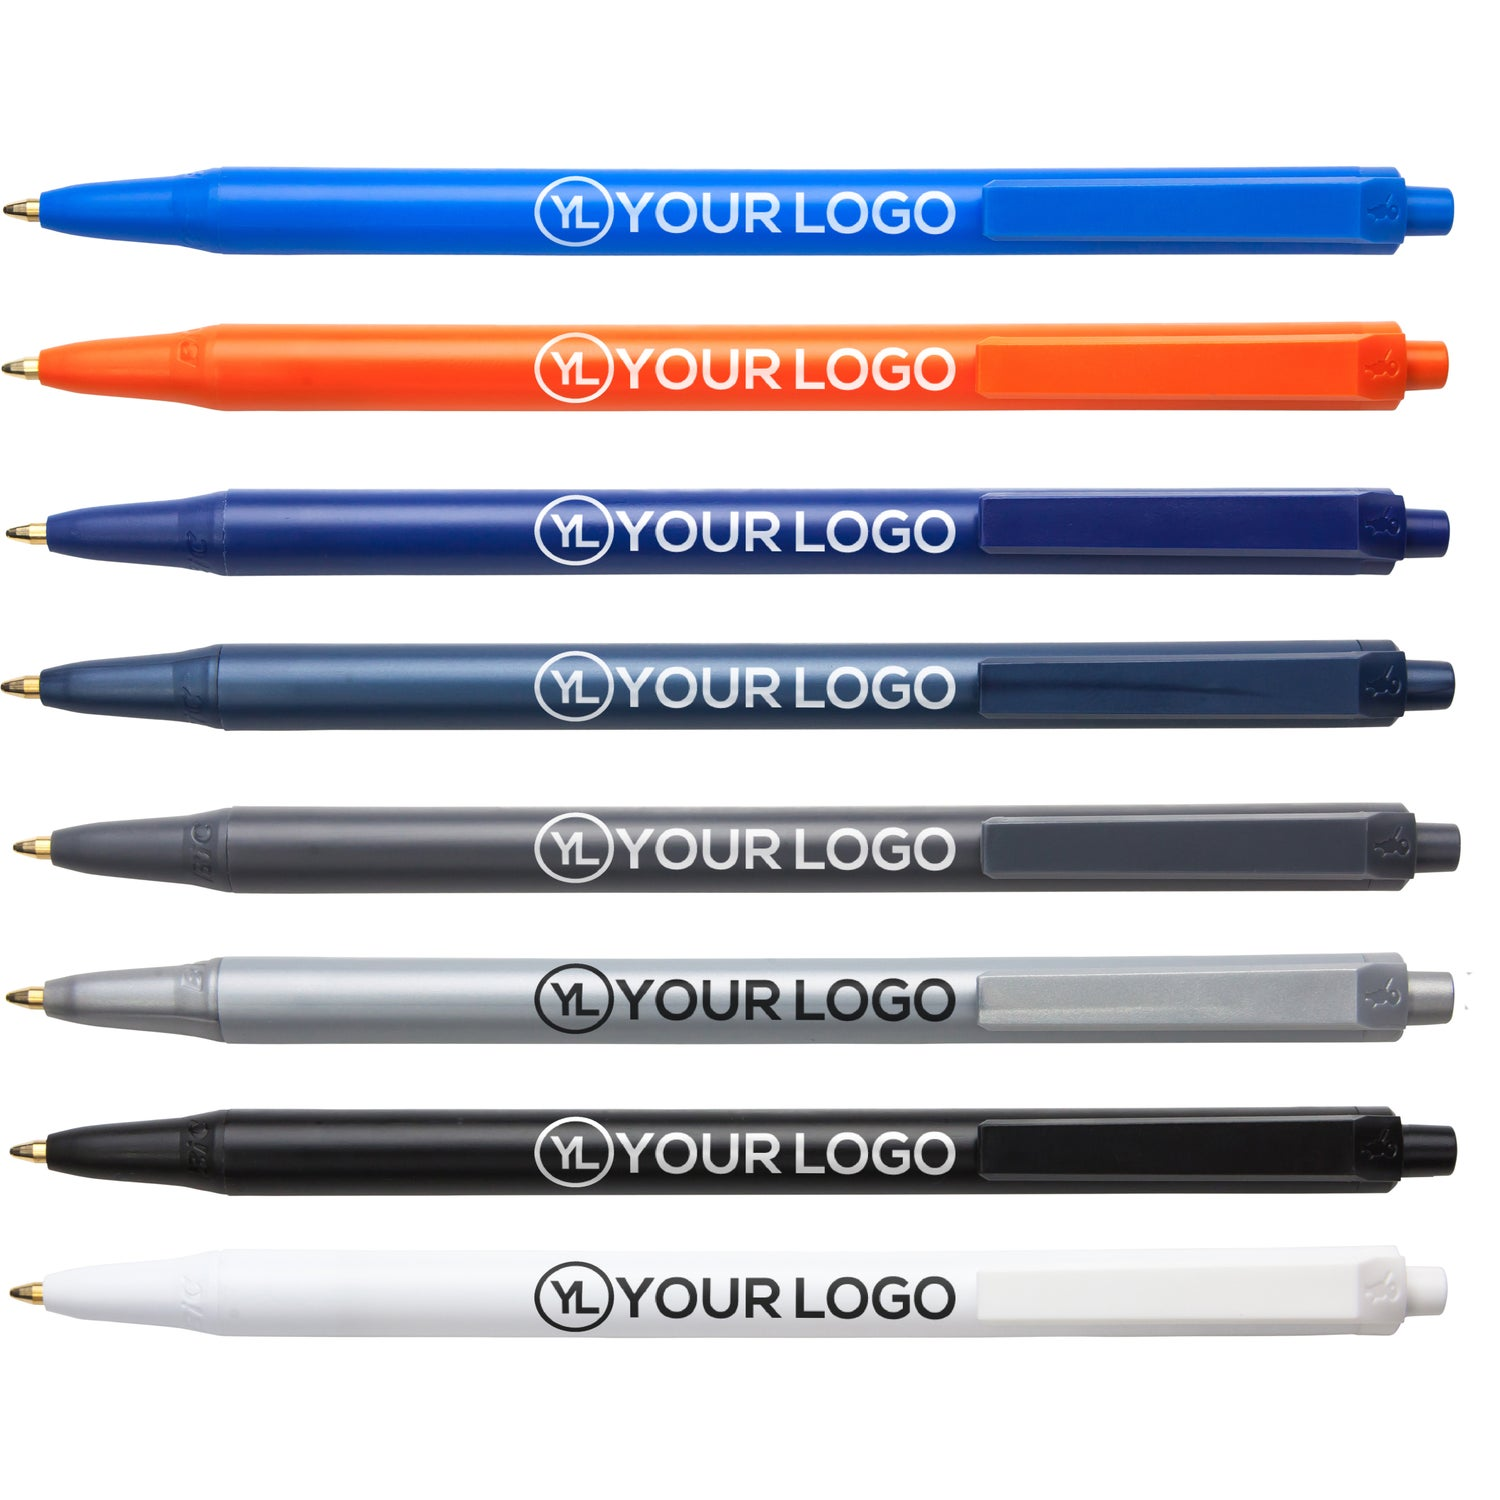 Click Here To Order Bic Clic Stic Pens Printed With Your